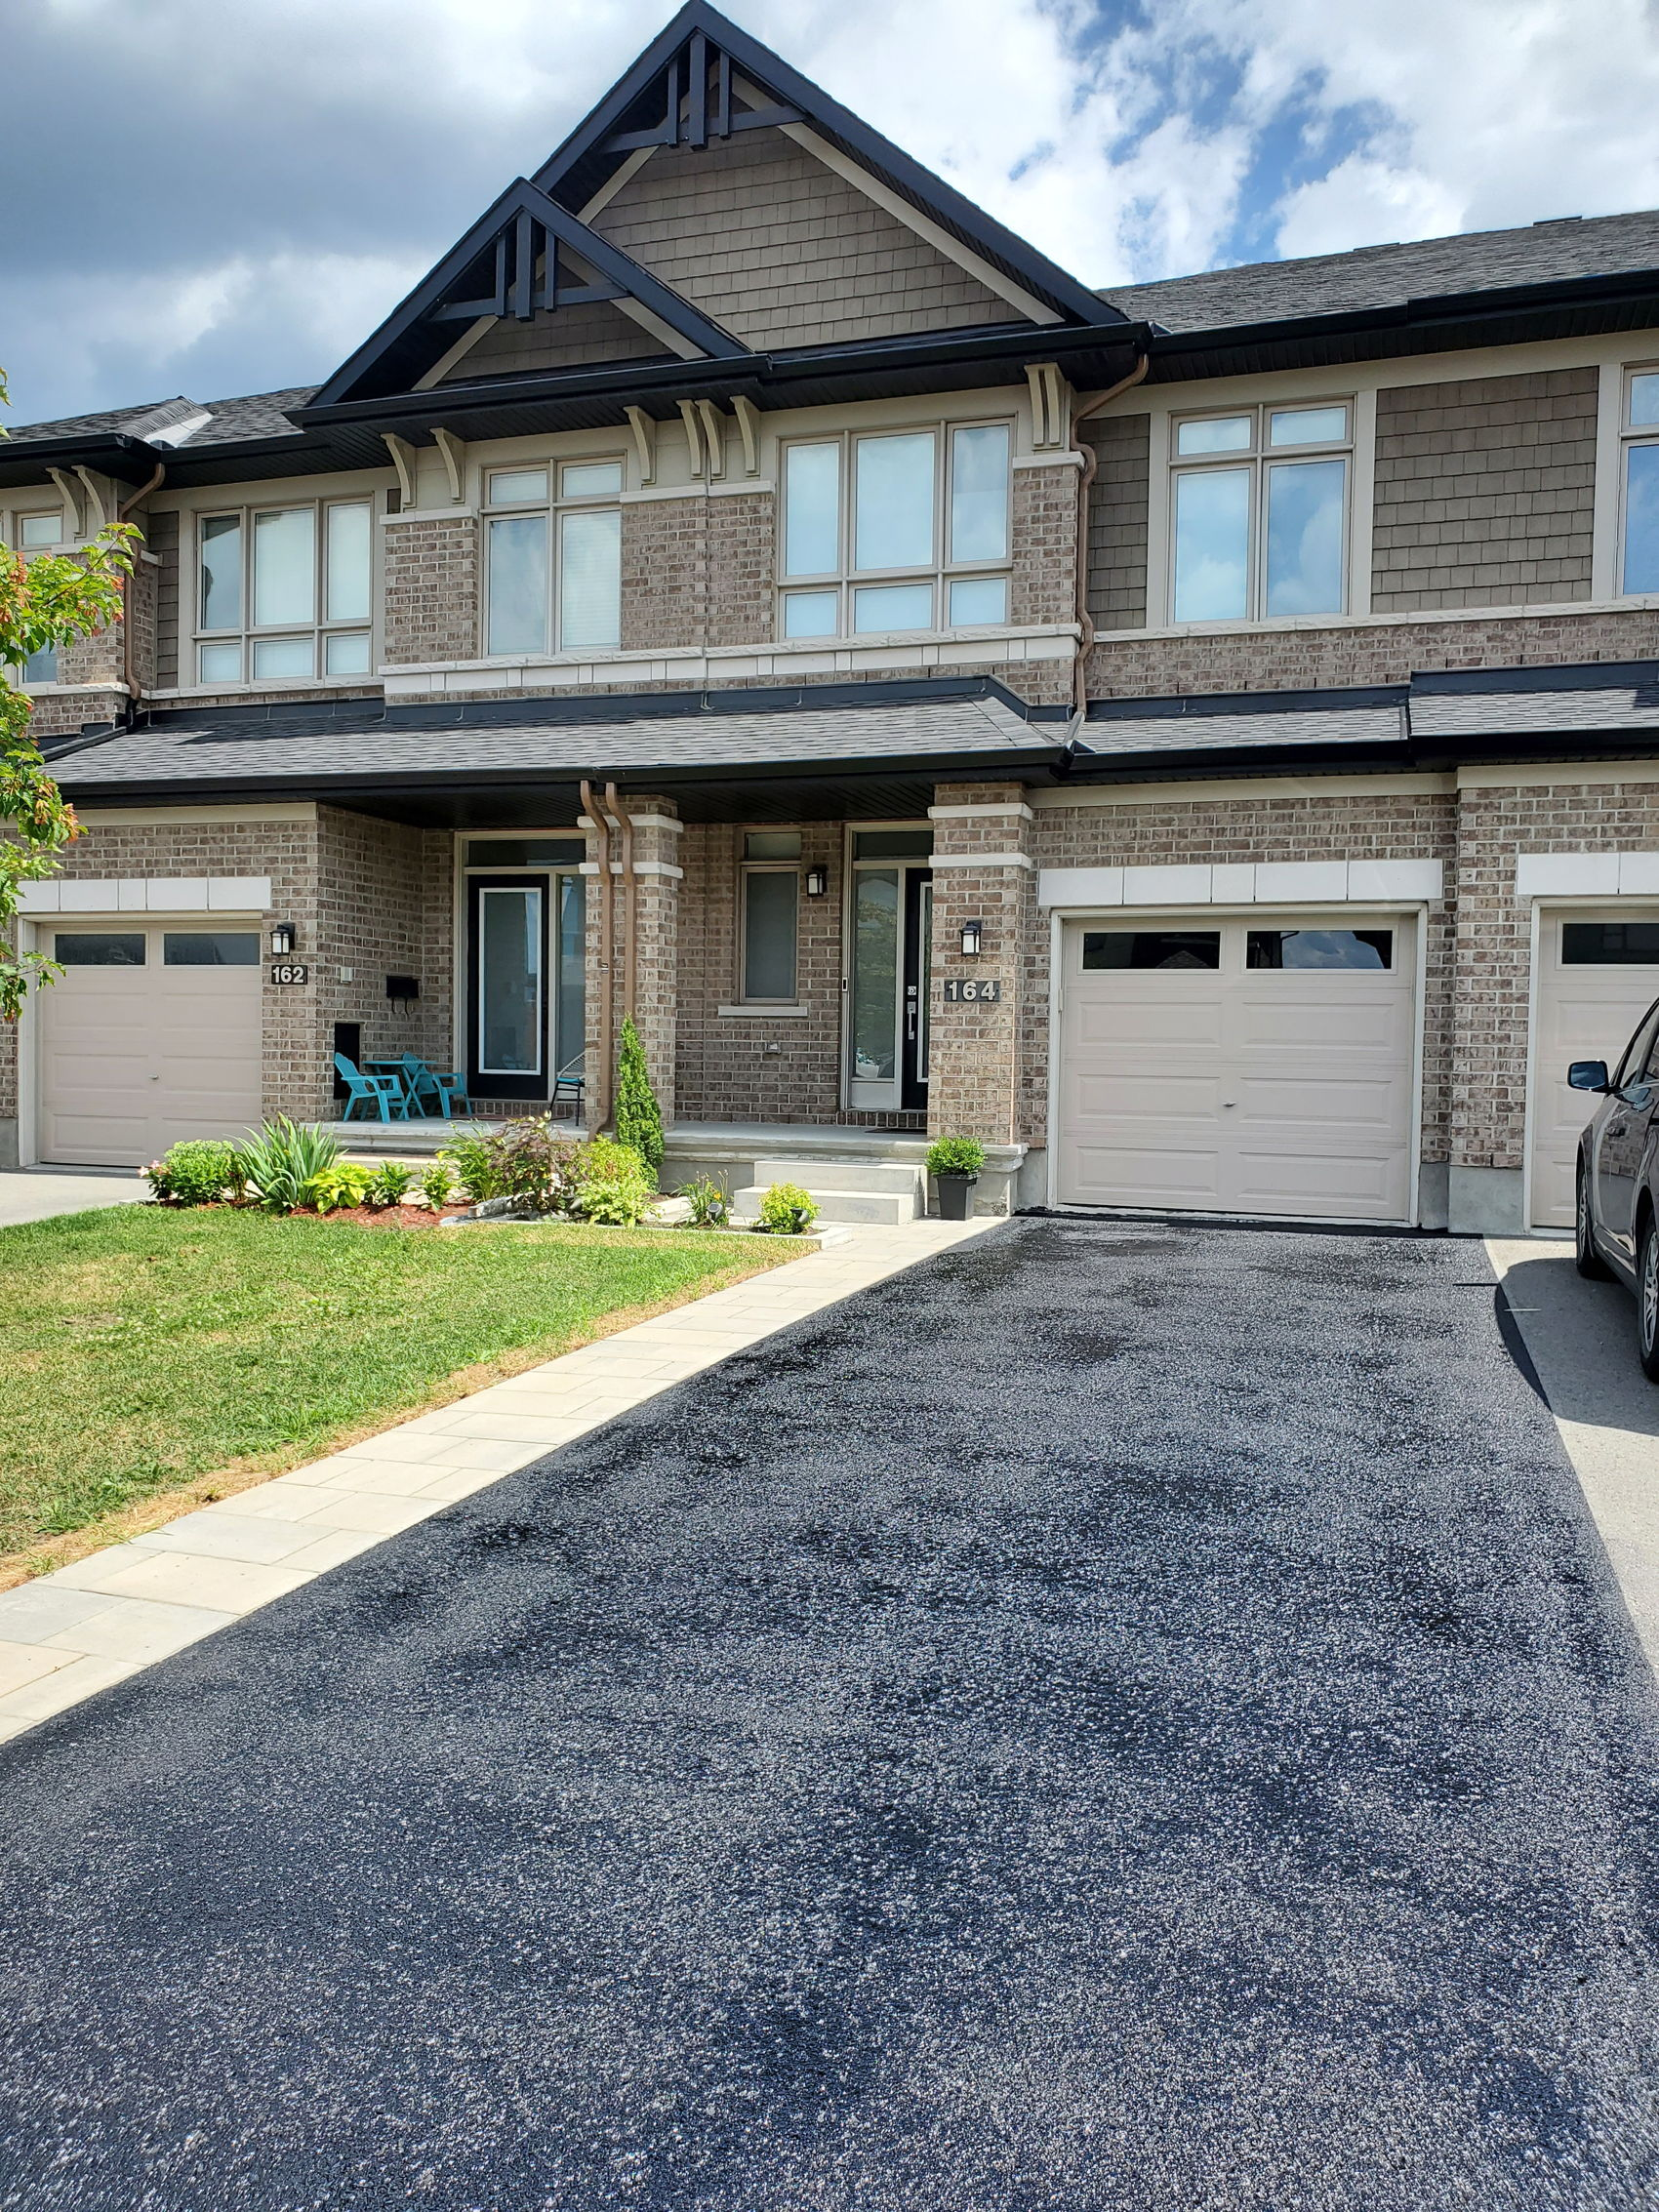 164 Hawkeswood FRONT SUMMER.jpg